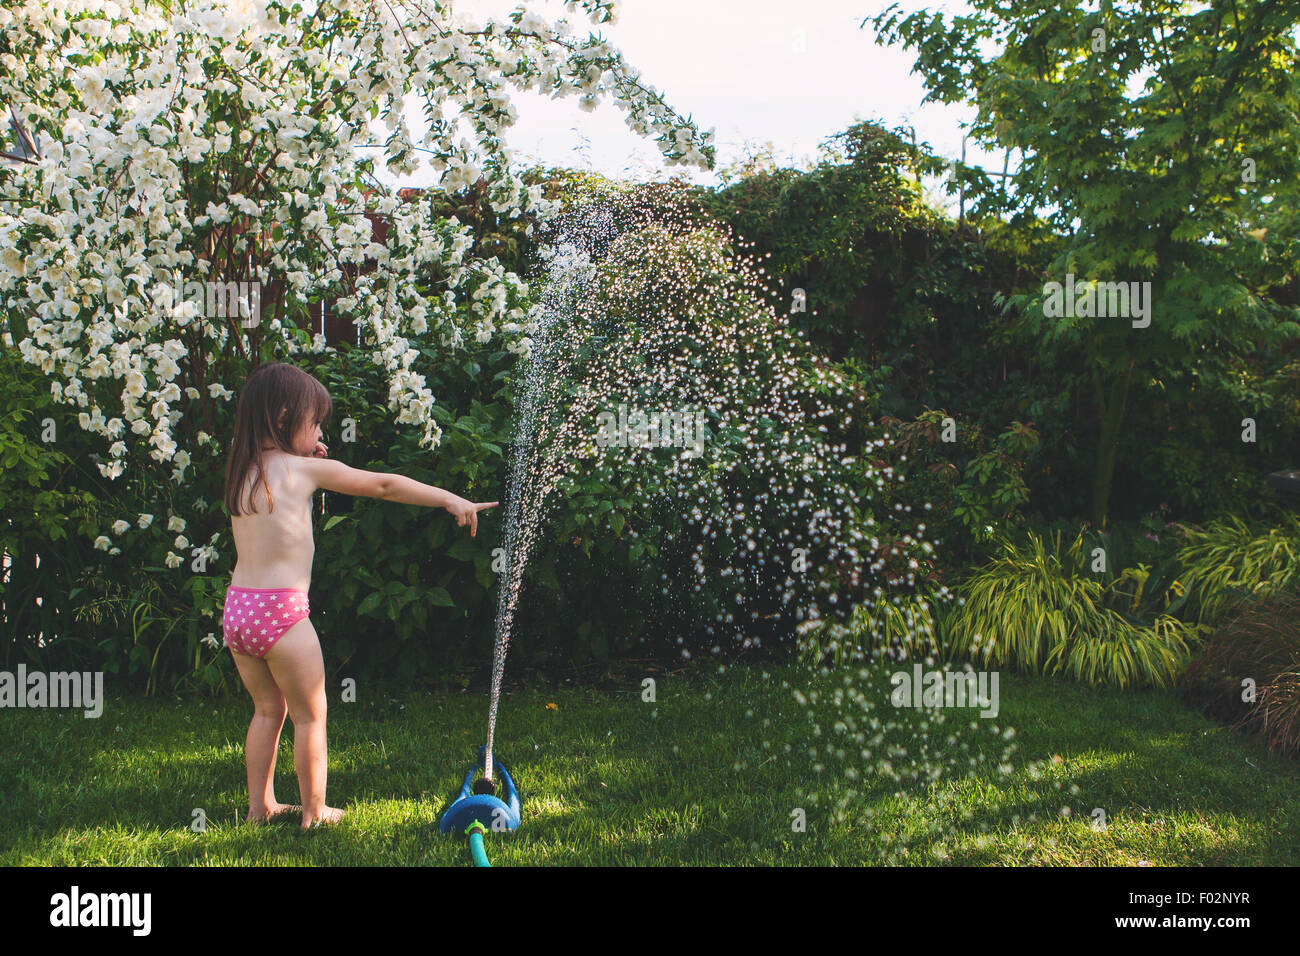 Girl playing with hosepipe in the garden - Stock Image